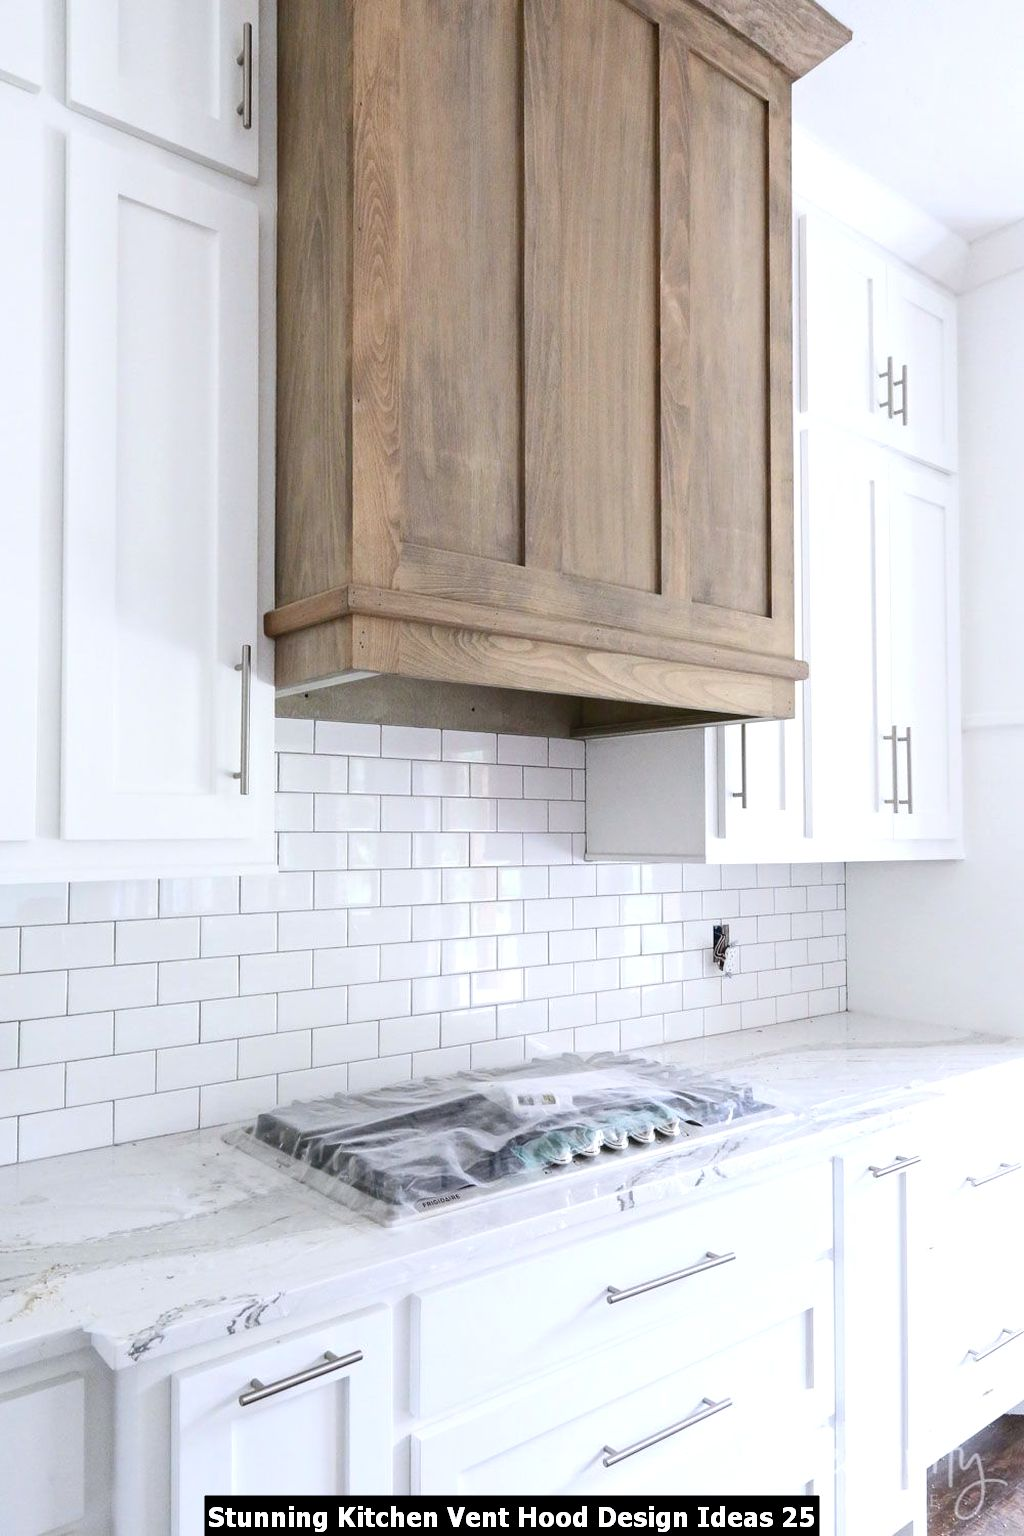 Stunning Kitchen Vent Hood Design Ideas 25